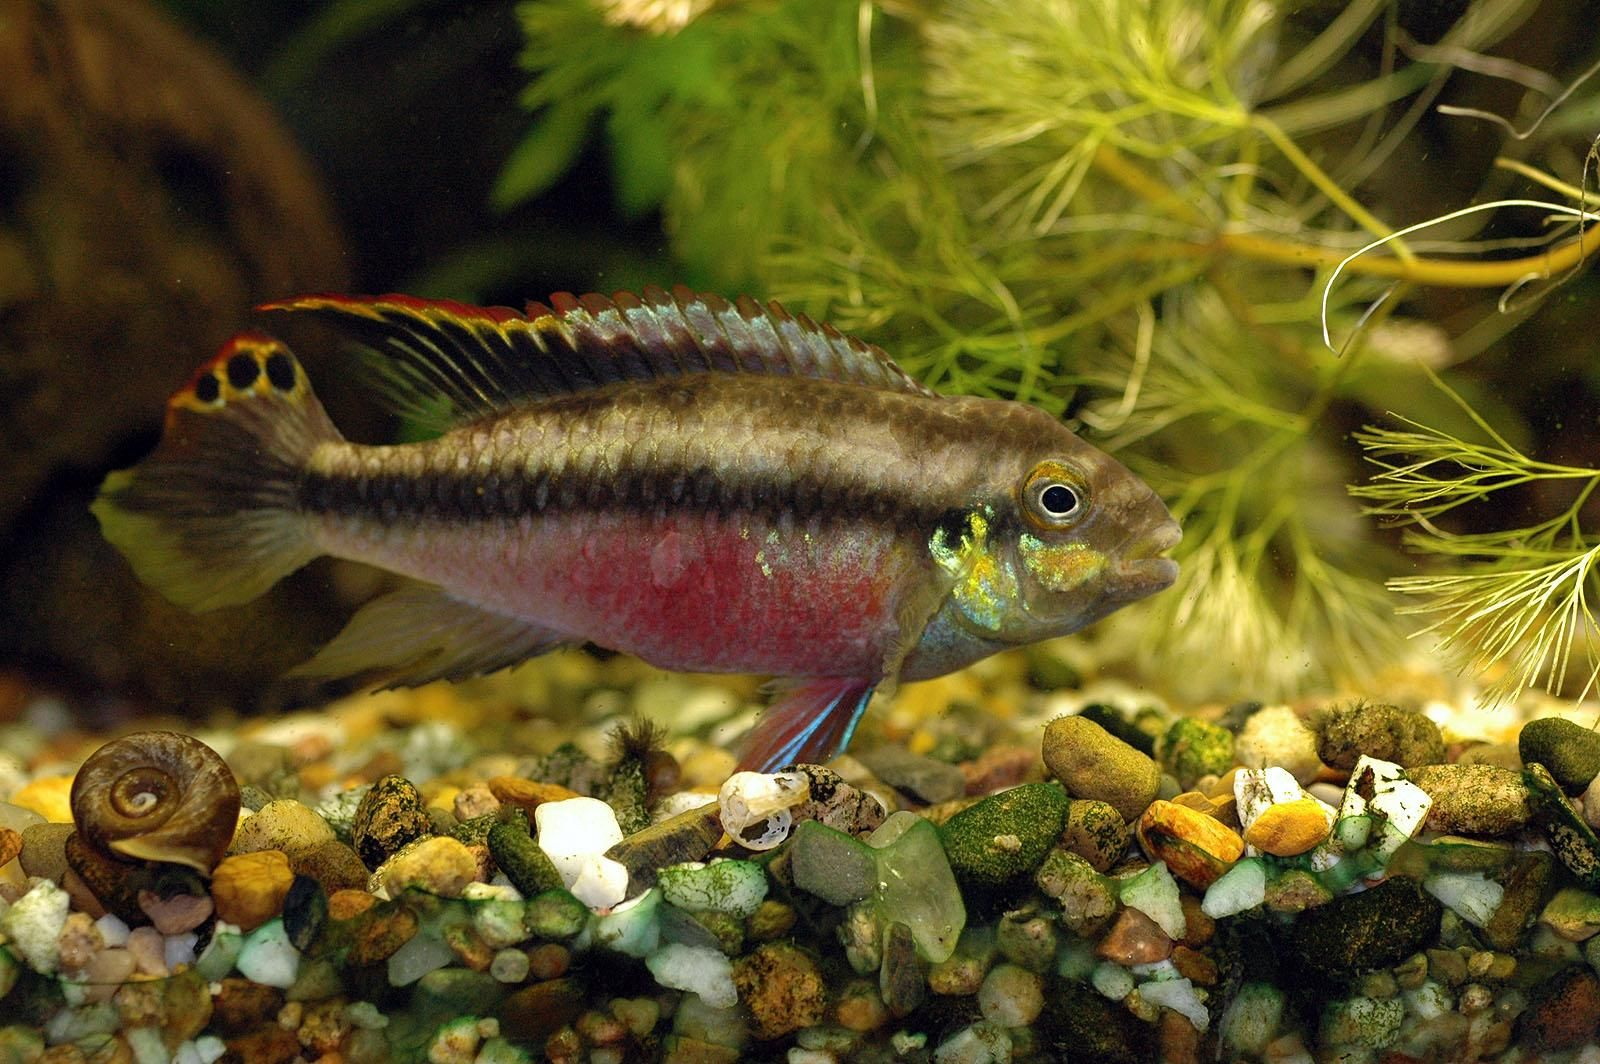 Freshwater aquarium fish photos - Freshwater Tropical Fish Pelvicachromis Kribensis Freshwater Aquarium Fish Free Wallpaper In